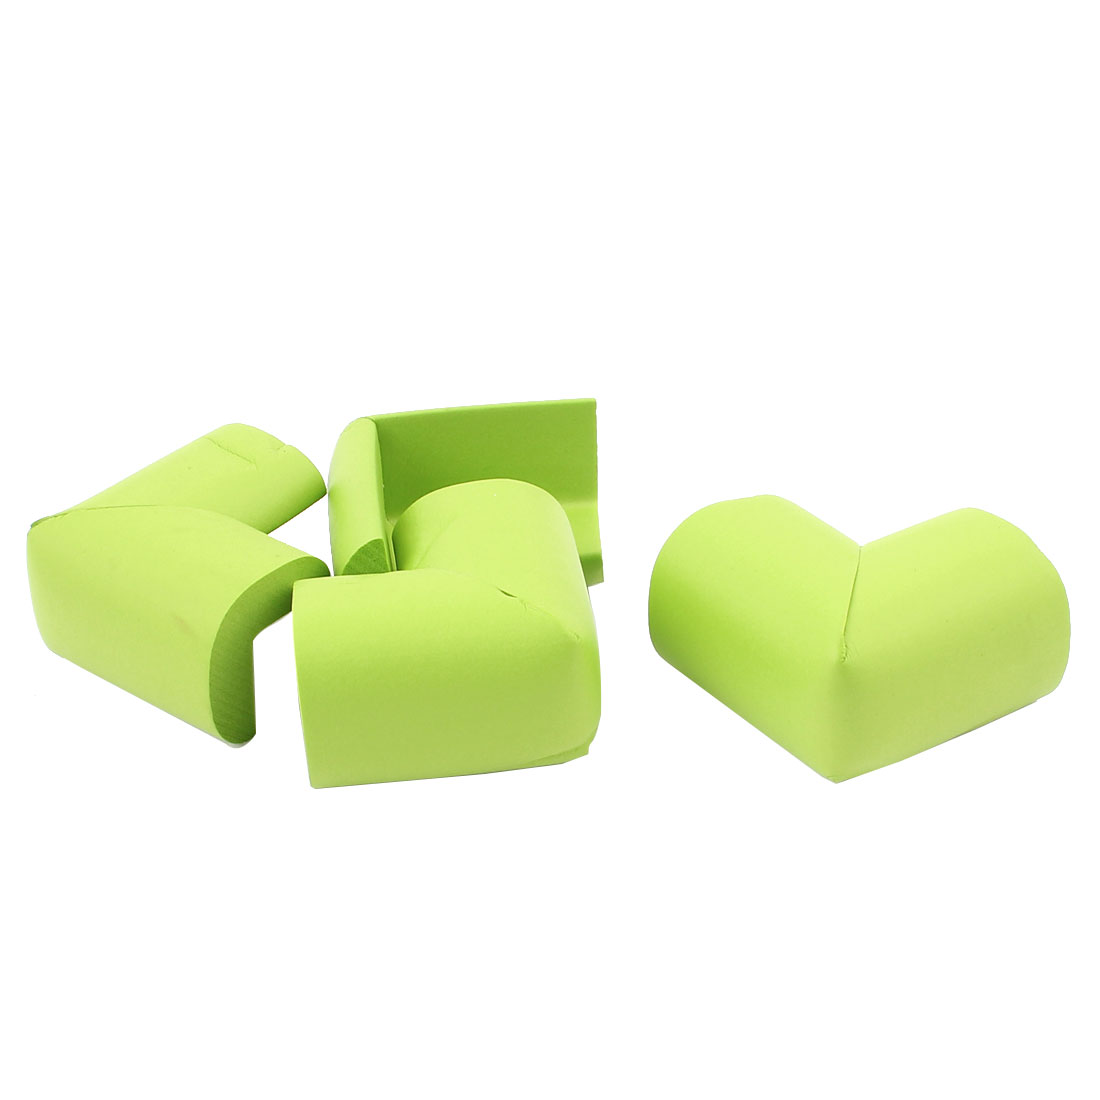 Baby Safety Desk Table Corner Soft Cushion Cover Protector Pad Green 4pcs